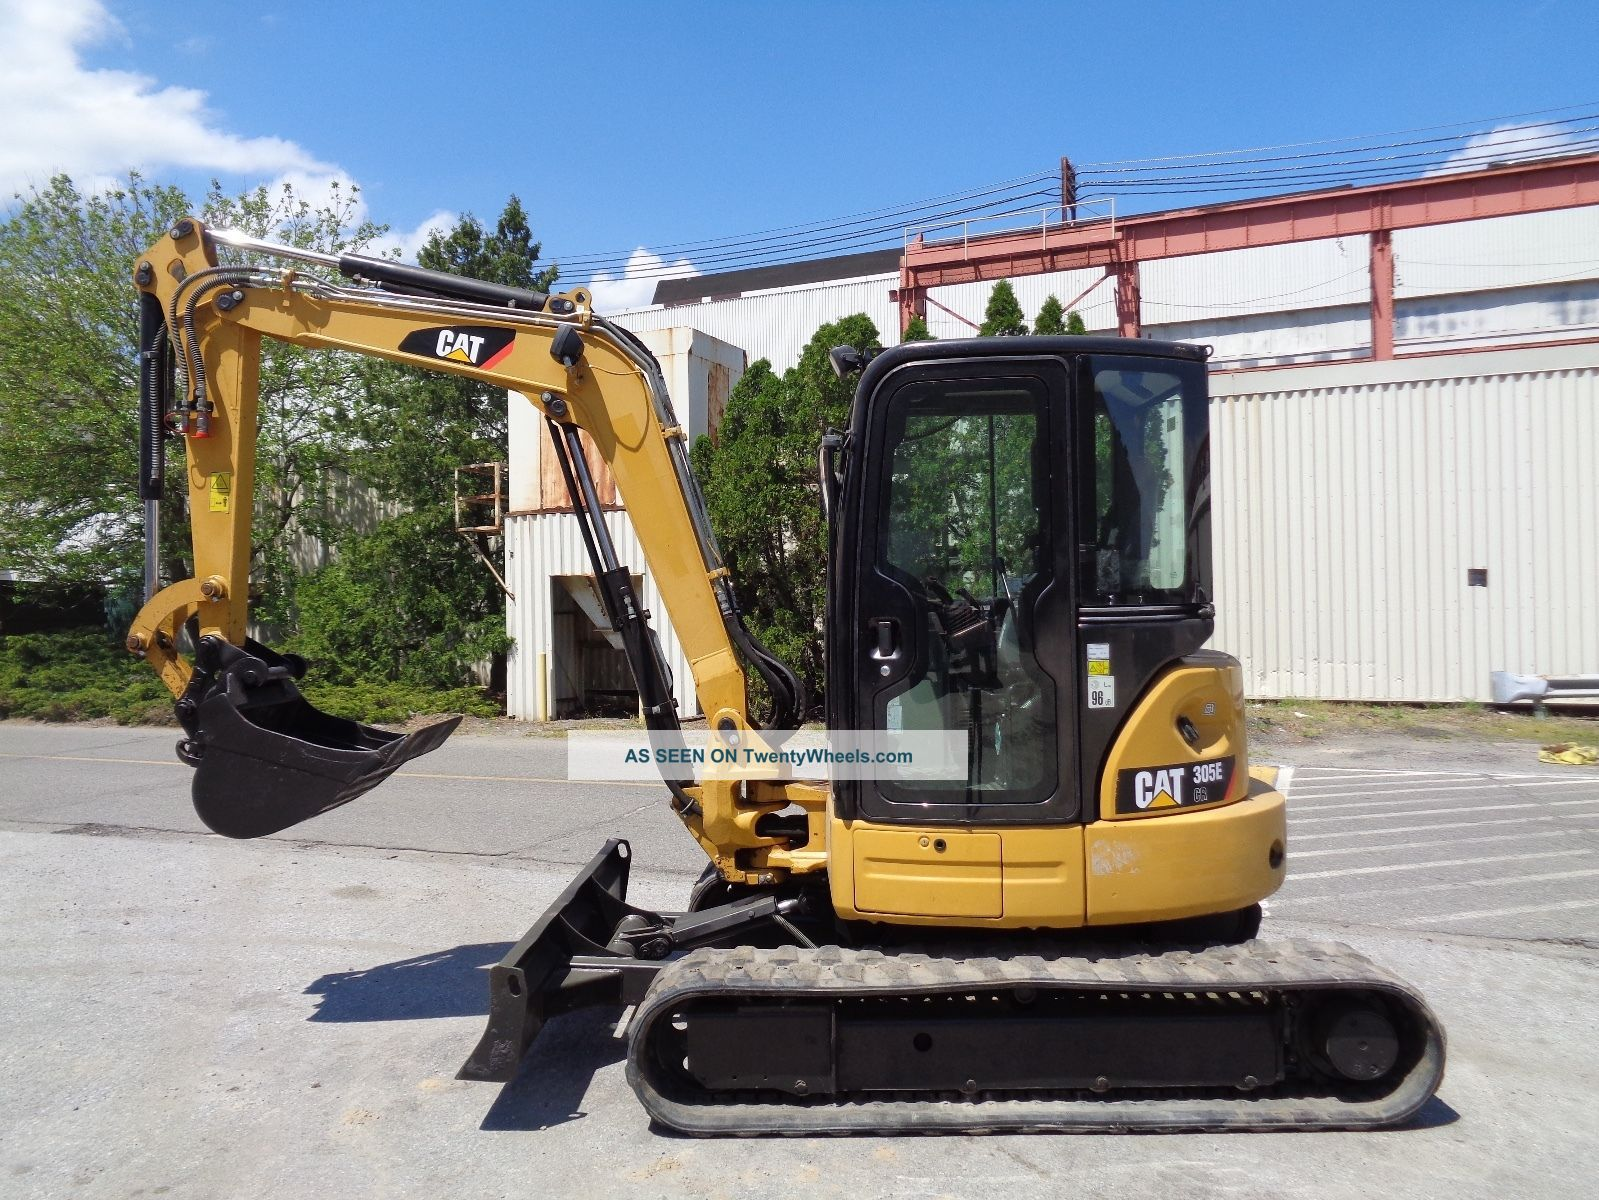 2012 Caterpillar 305ecr Mini Excavator Backhoe Loader - Enclosed Cab - Excavators photo